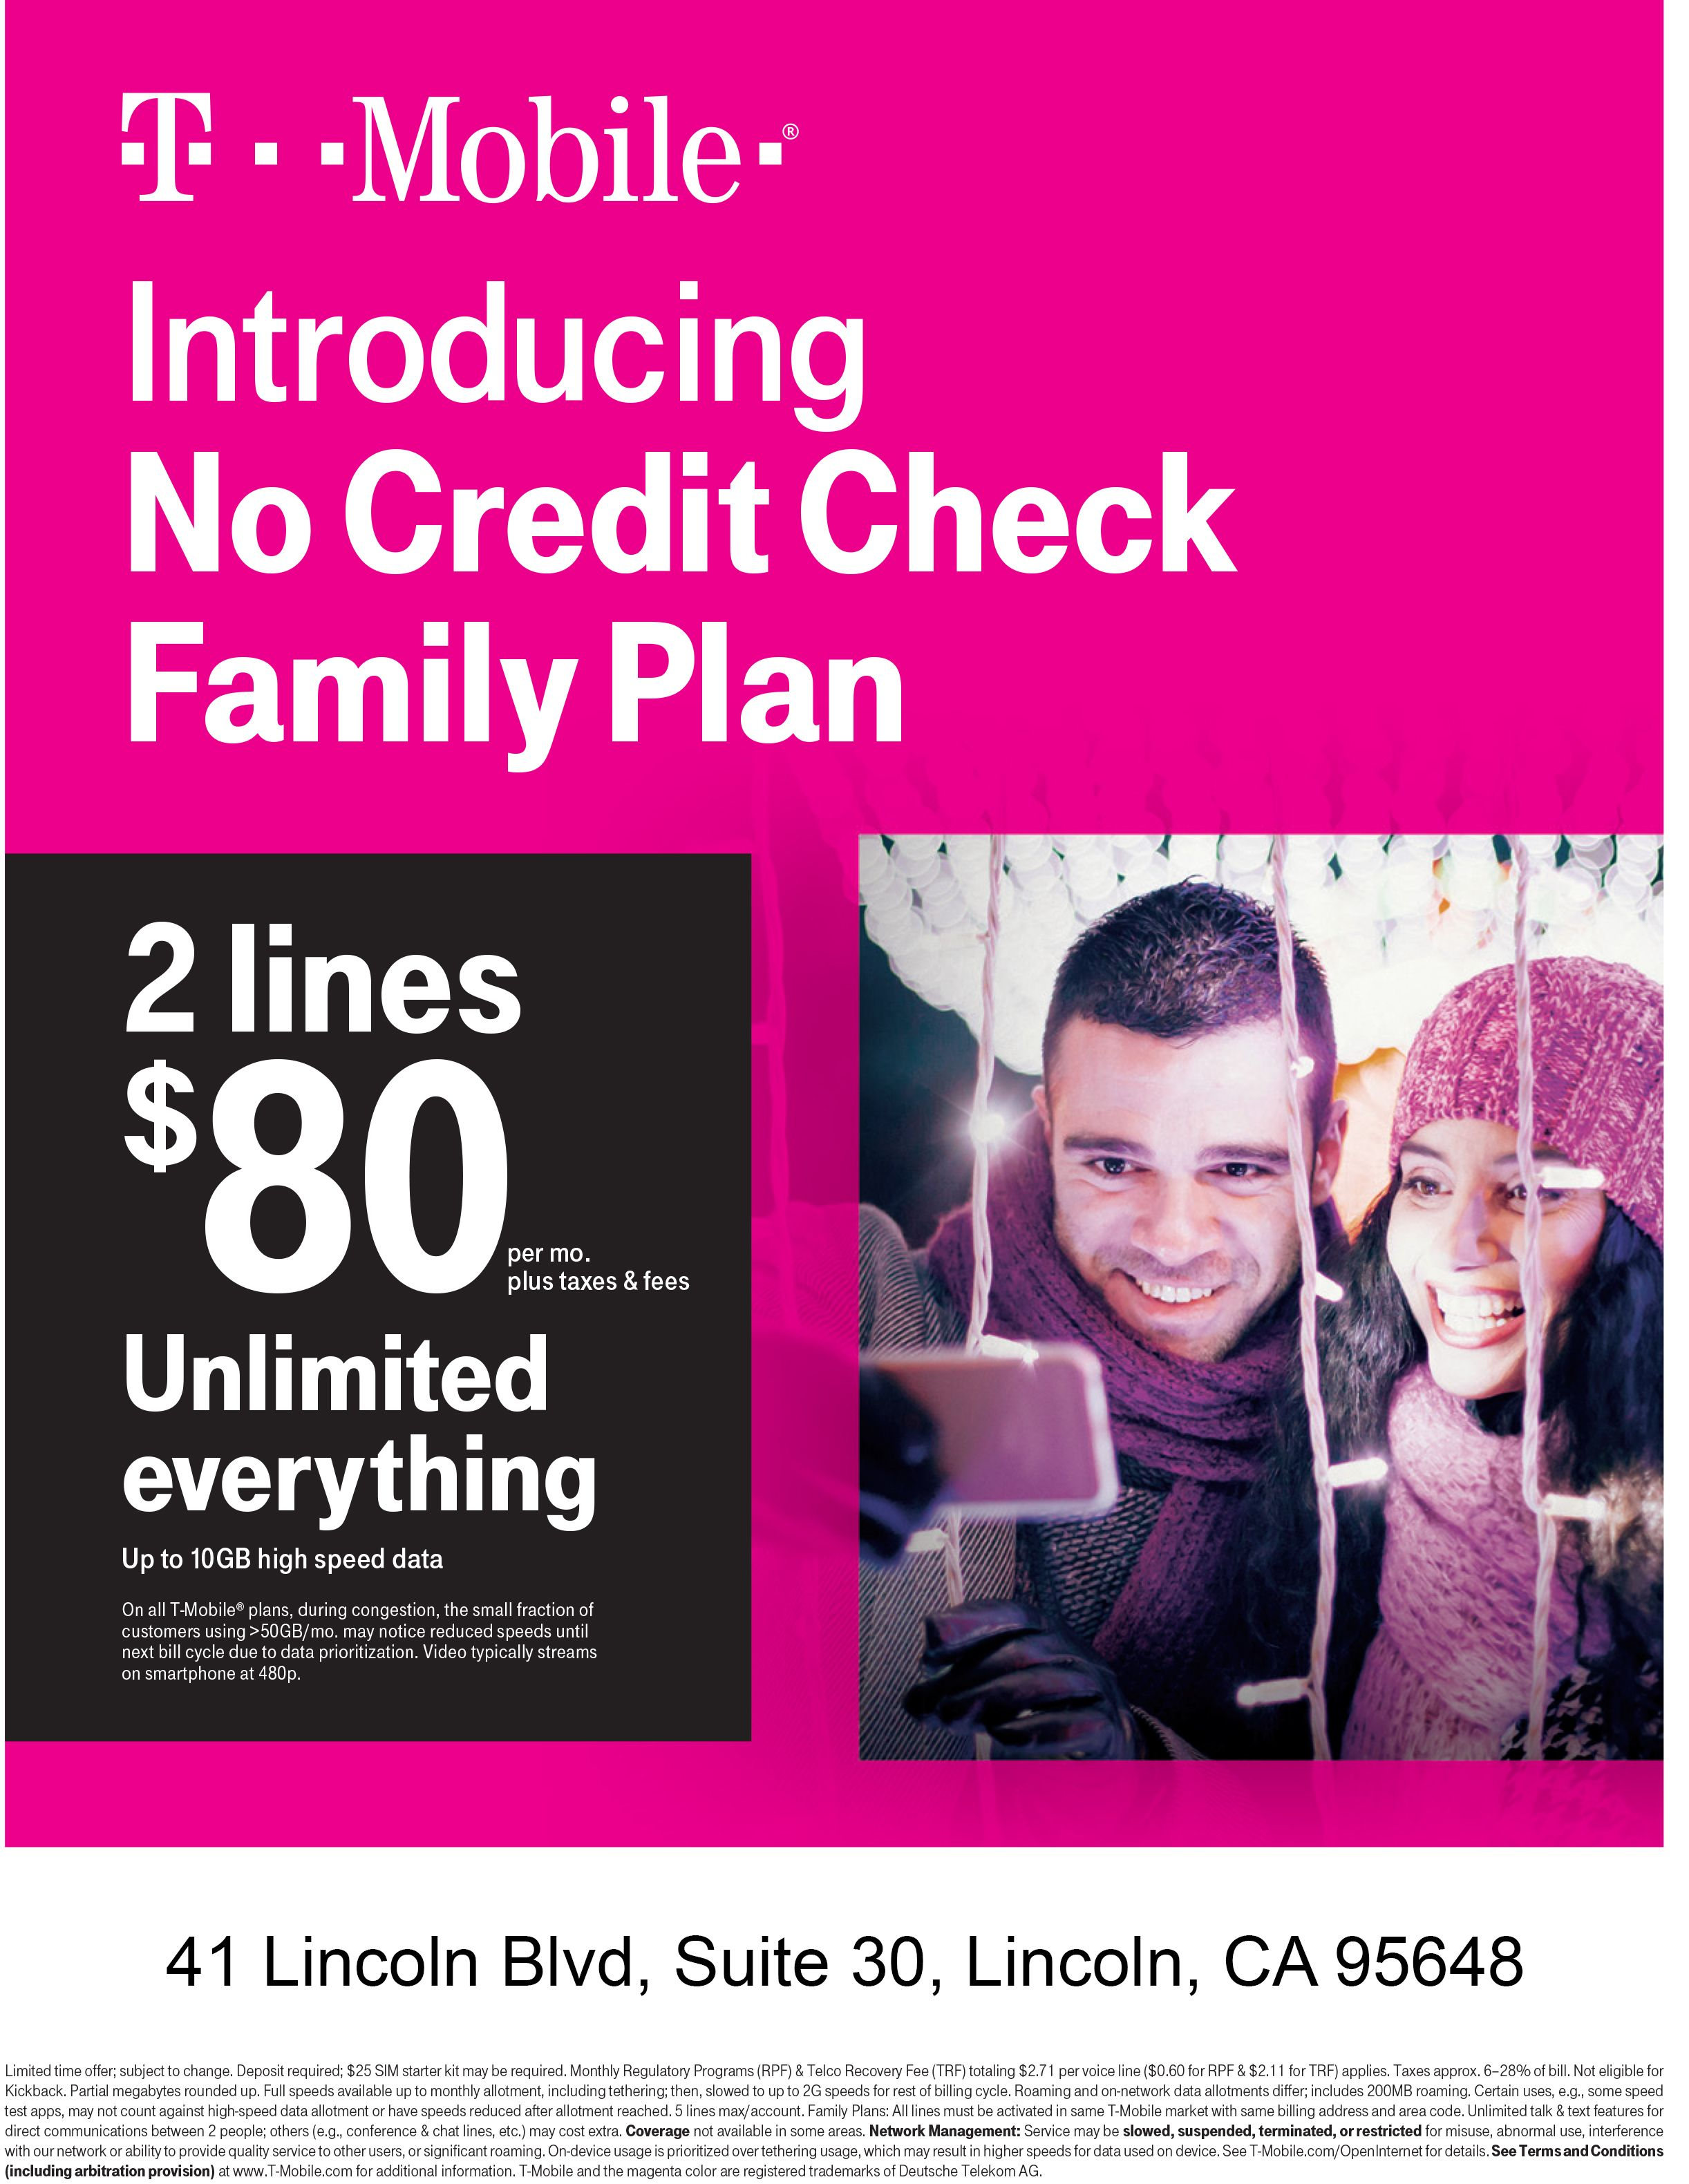 Introducing no credit check family plan  2 lines for $80/mo